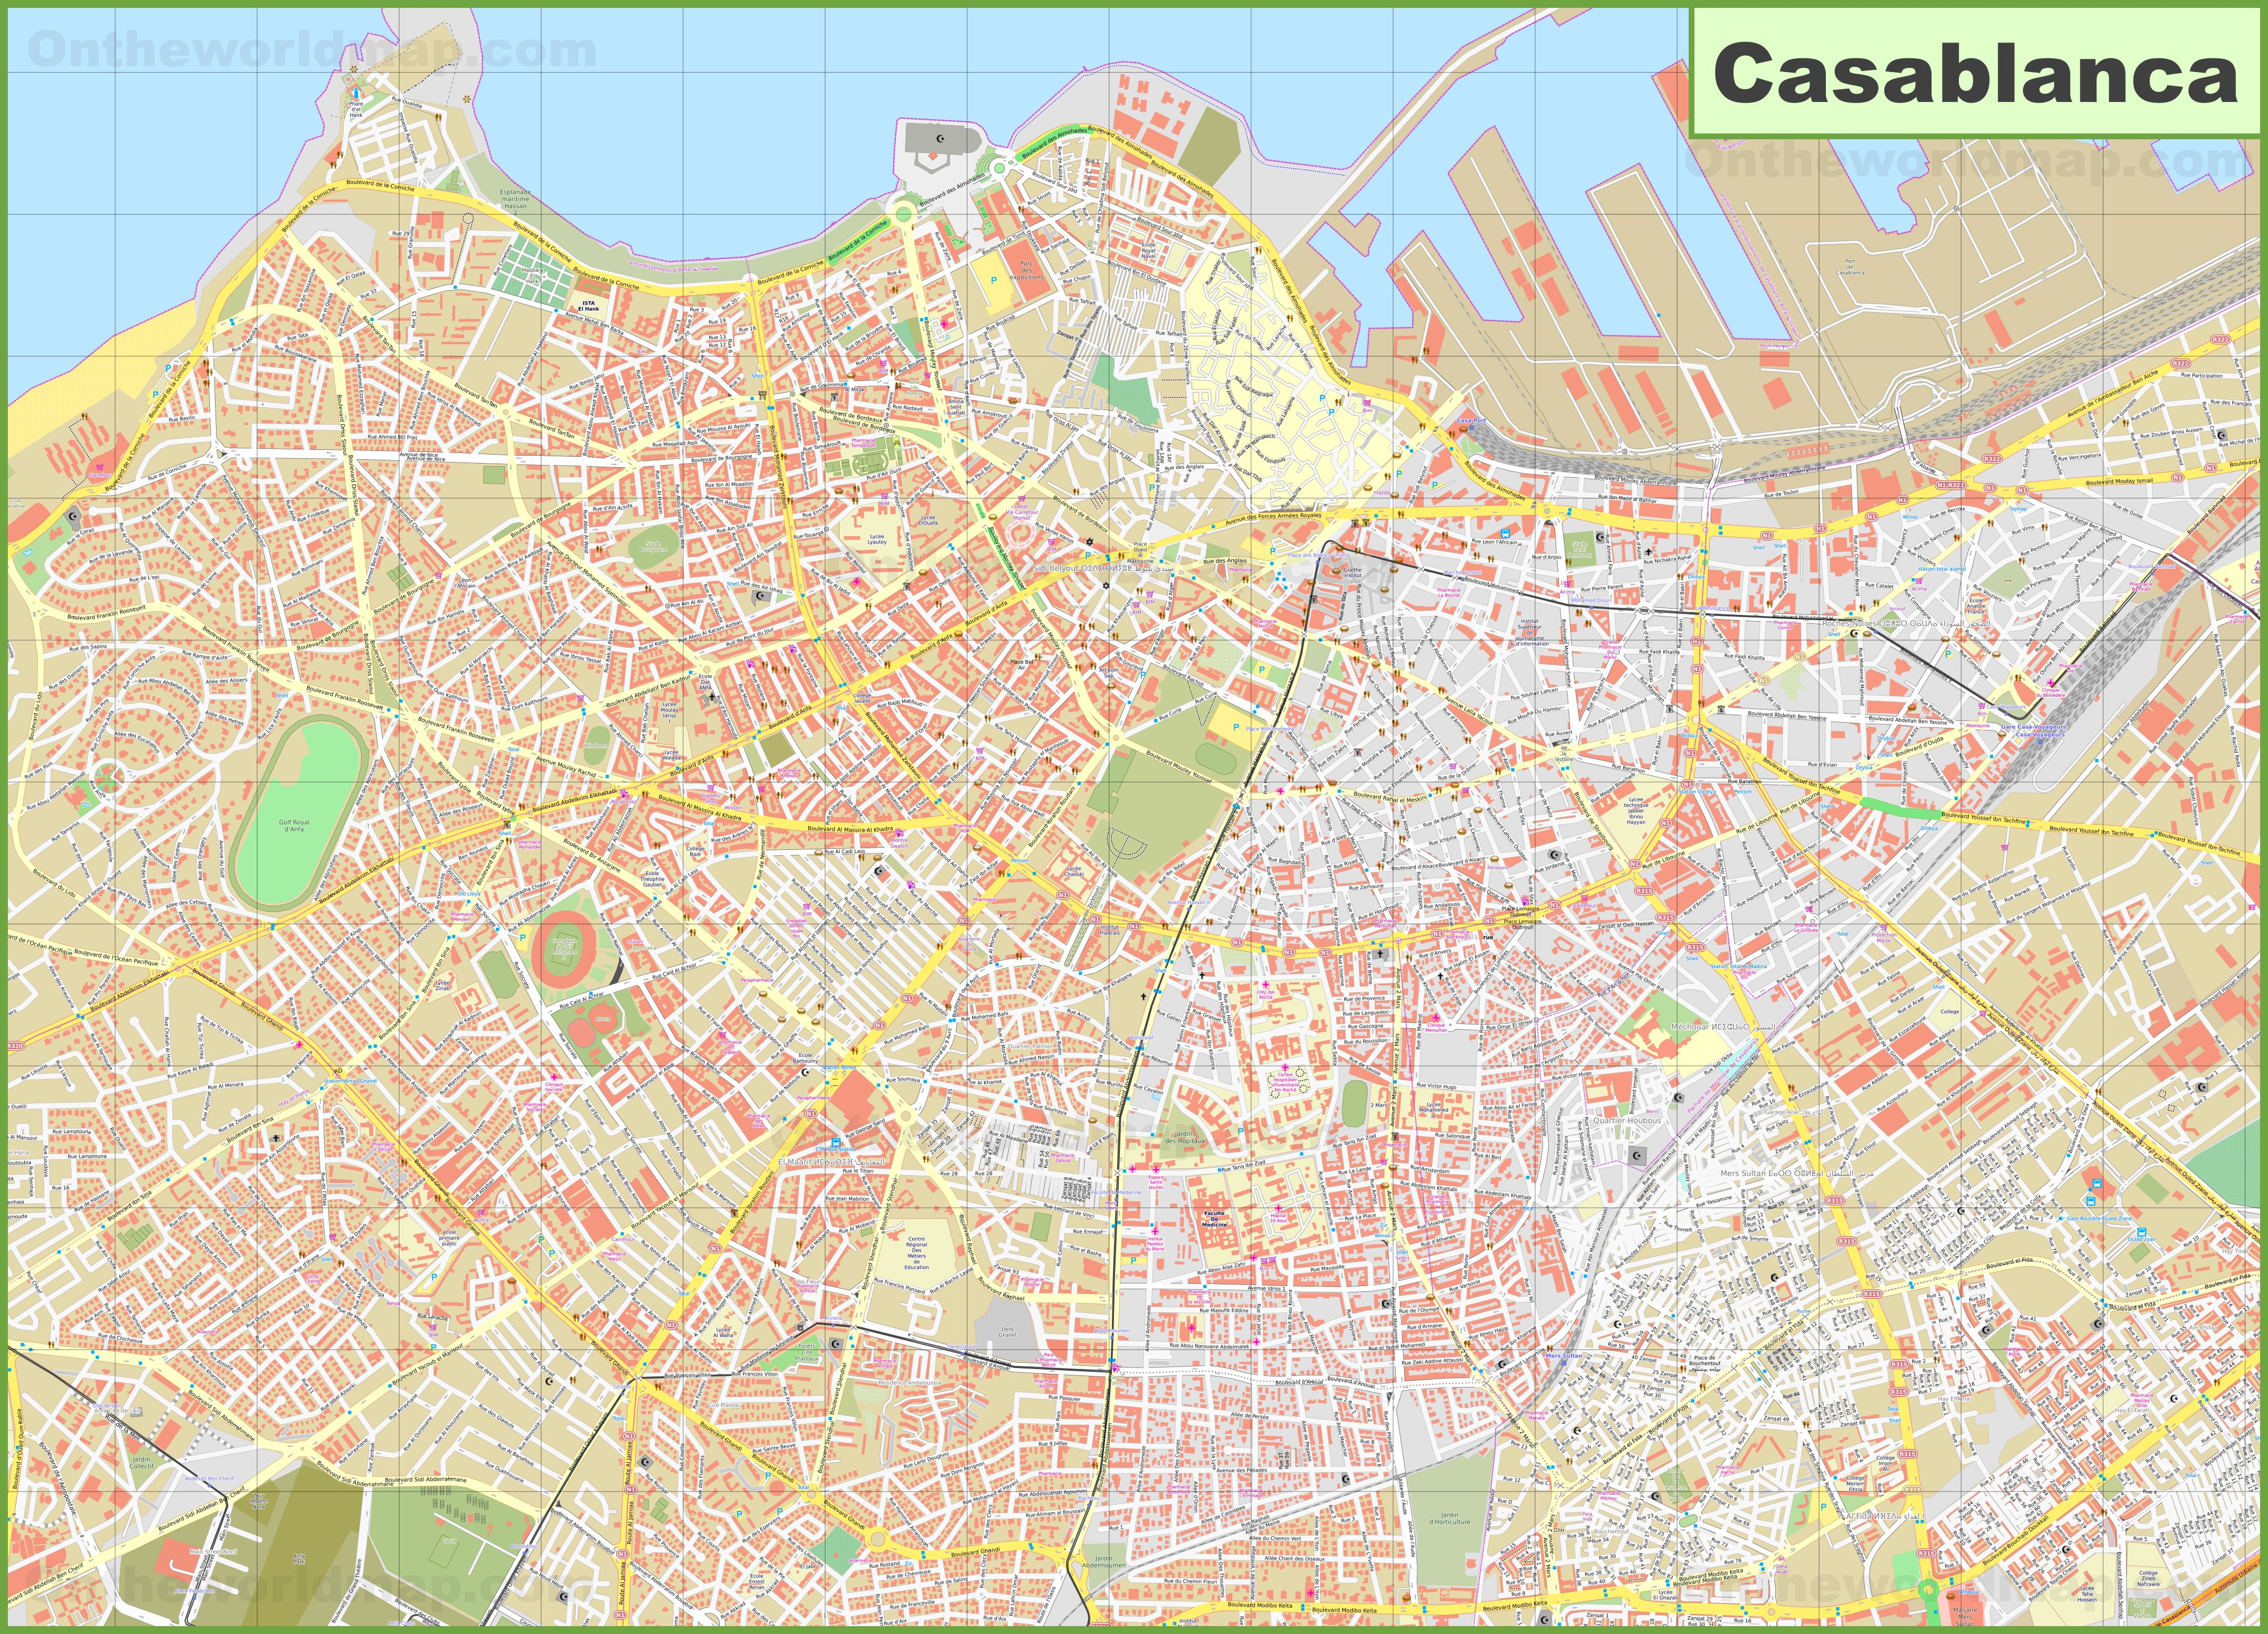 Detailed map of Casablanca on